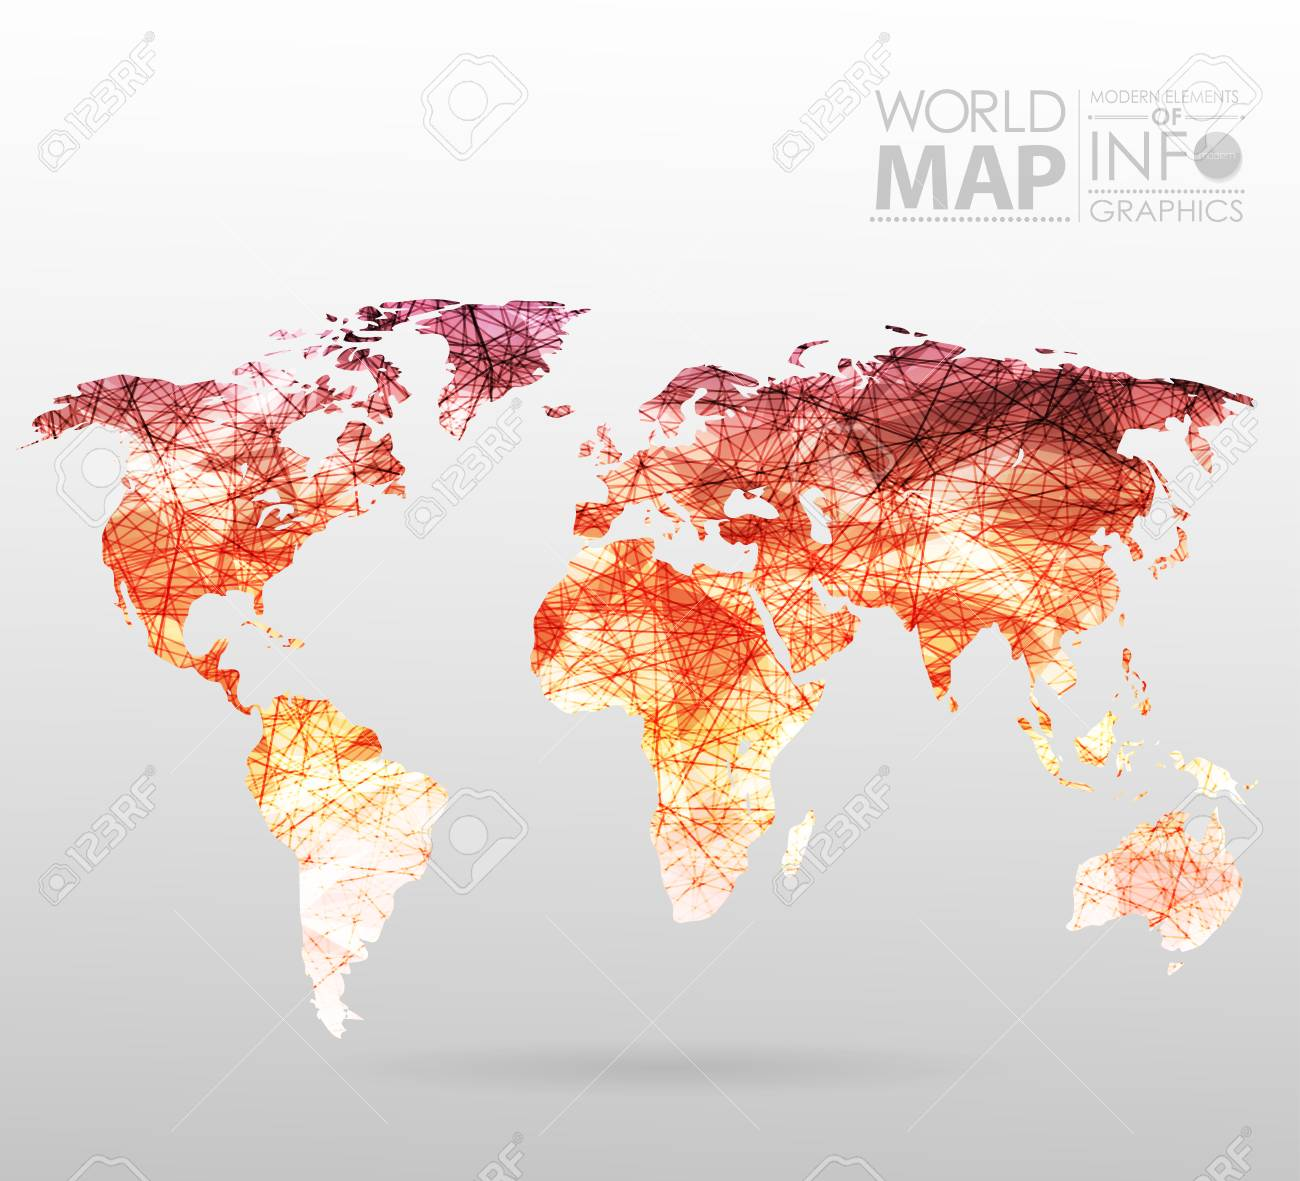 World map background in polygonal style. Modern elements of info.. on map of greek world, map of prehistoric world, map of roman world, map of buddhist world, map of black world, map of clean world, map of political world, map of developed world, map of digital world, map of colonial world, map of western world, map of old world, map of beautiful world, map of once upon a time, map of islamic world, map of medieval world, map of the classical world, map of ancient world, map of rural area, india modern world,